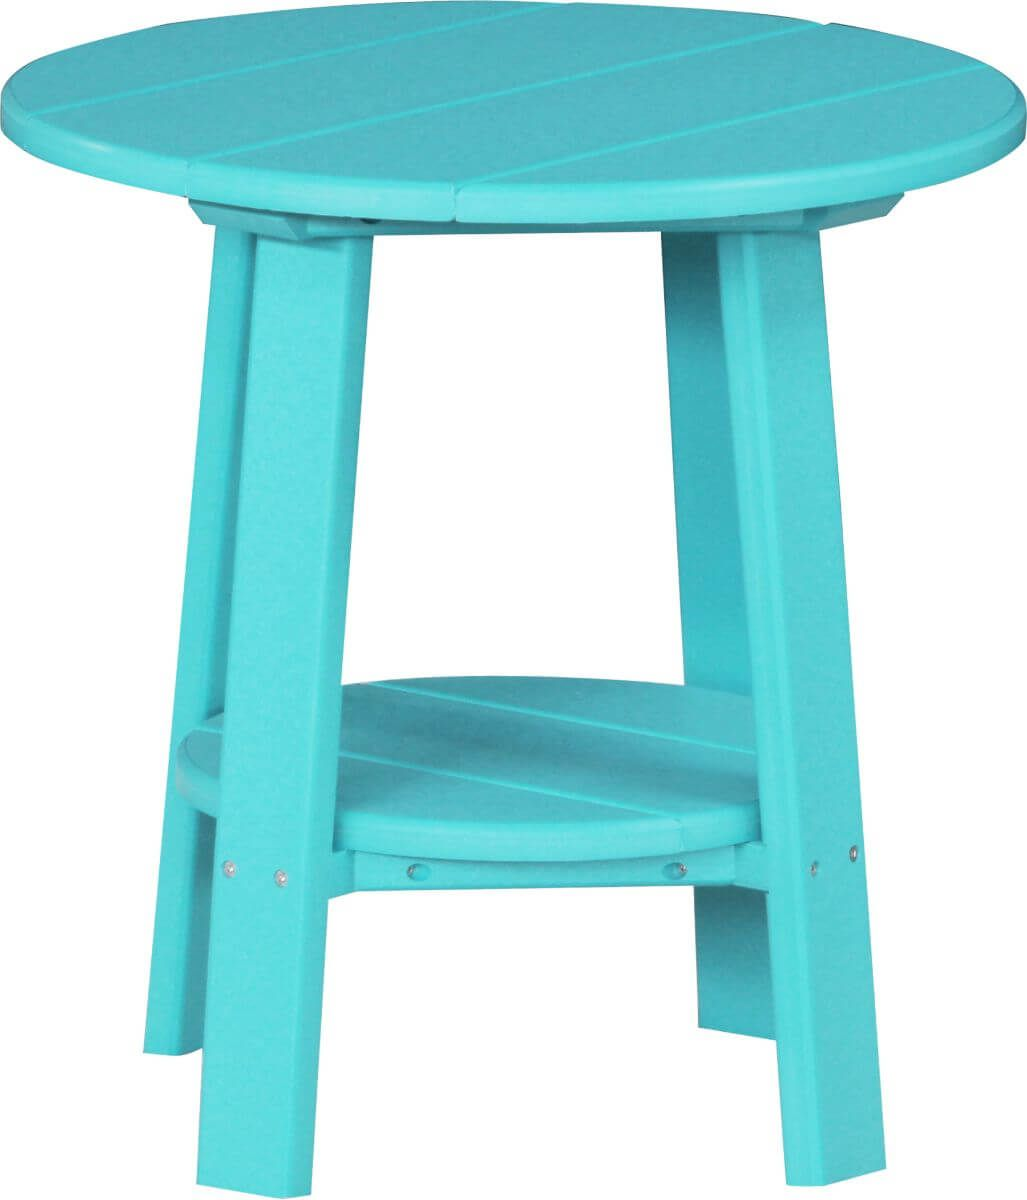 Aruba Blue Rockaway Outdoor Side Table